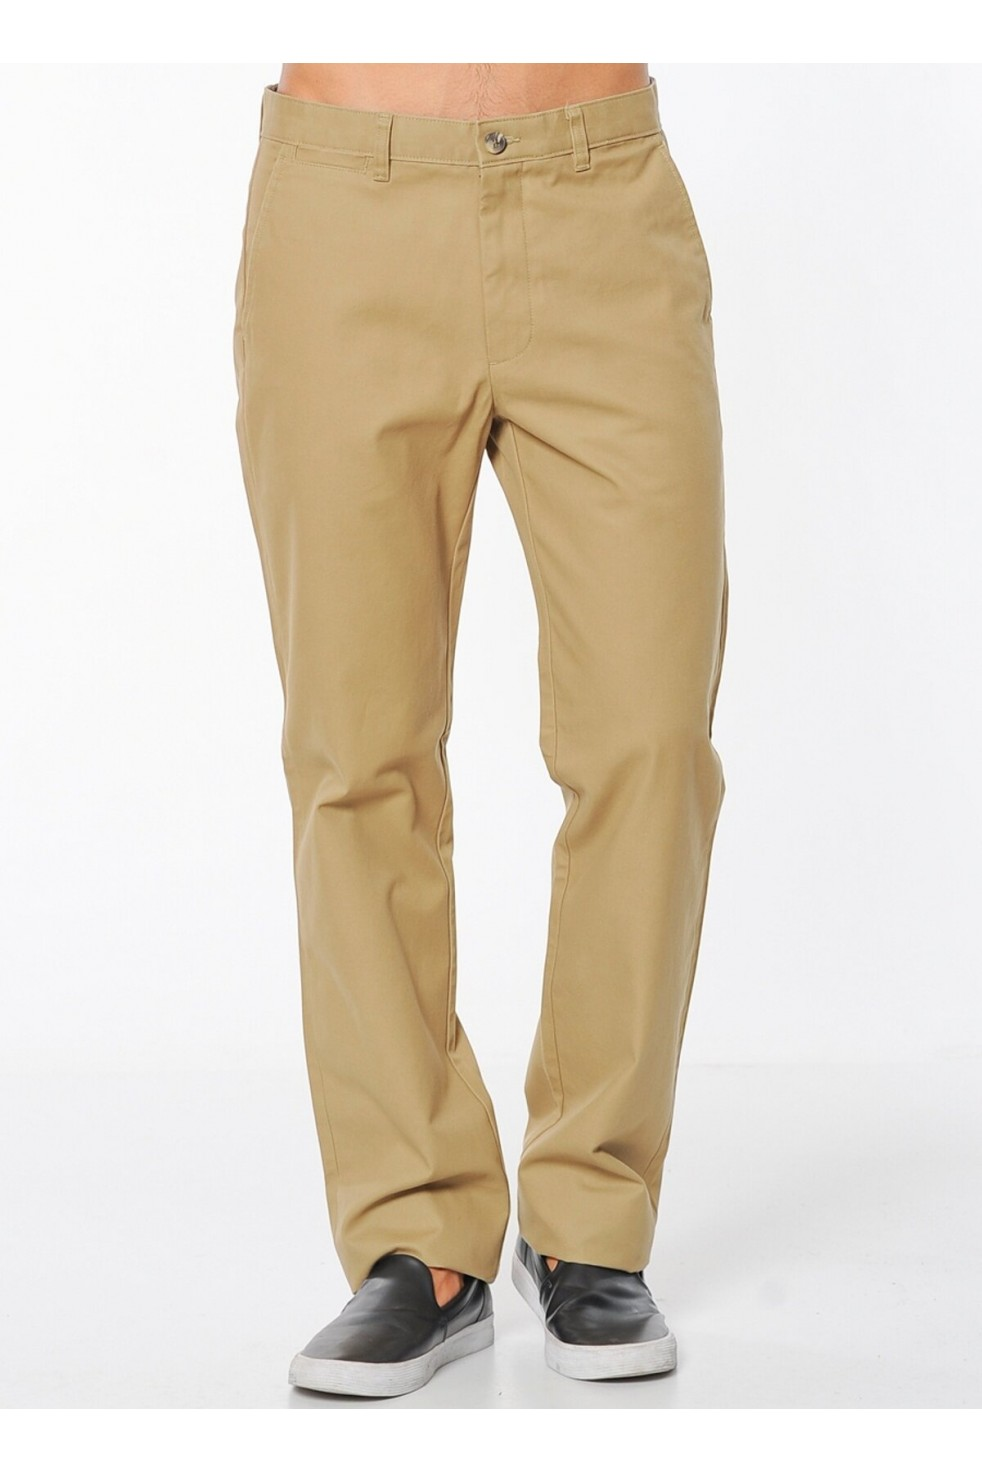 Dockers-Erkek-Pantolon-D1-Slim-Fit-44358-0001